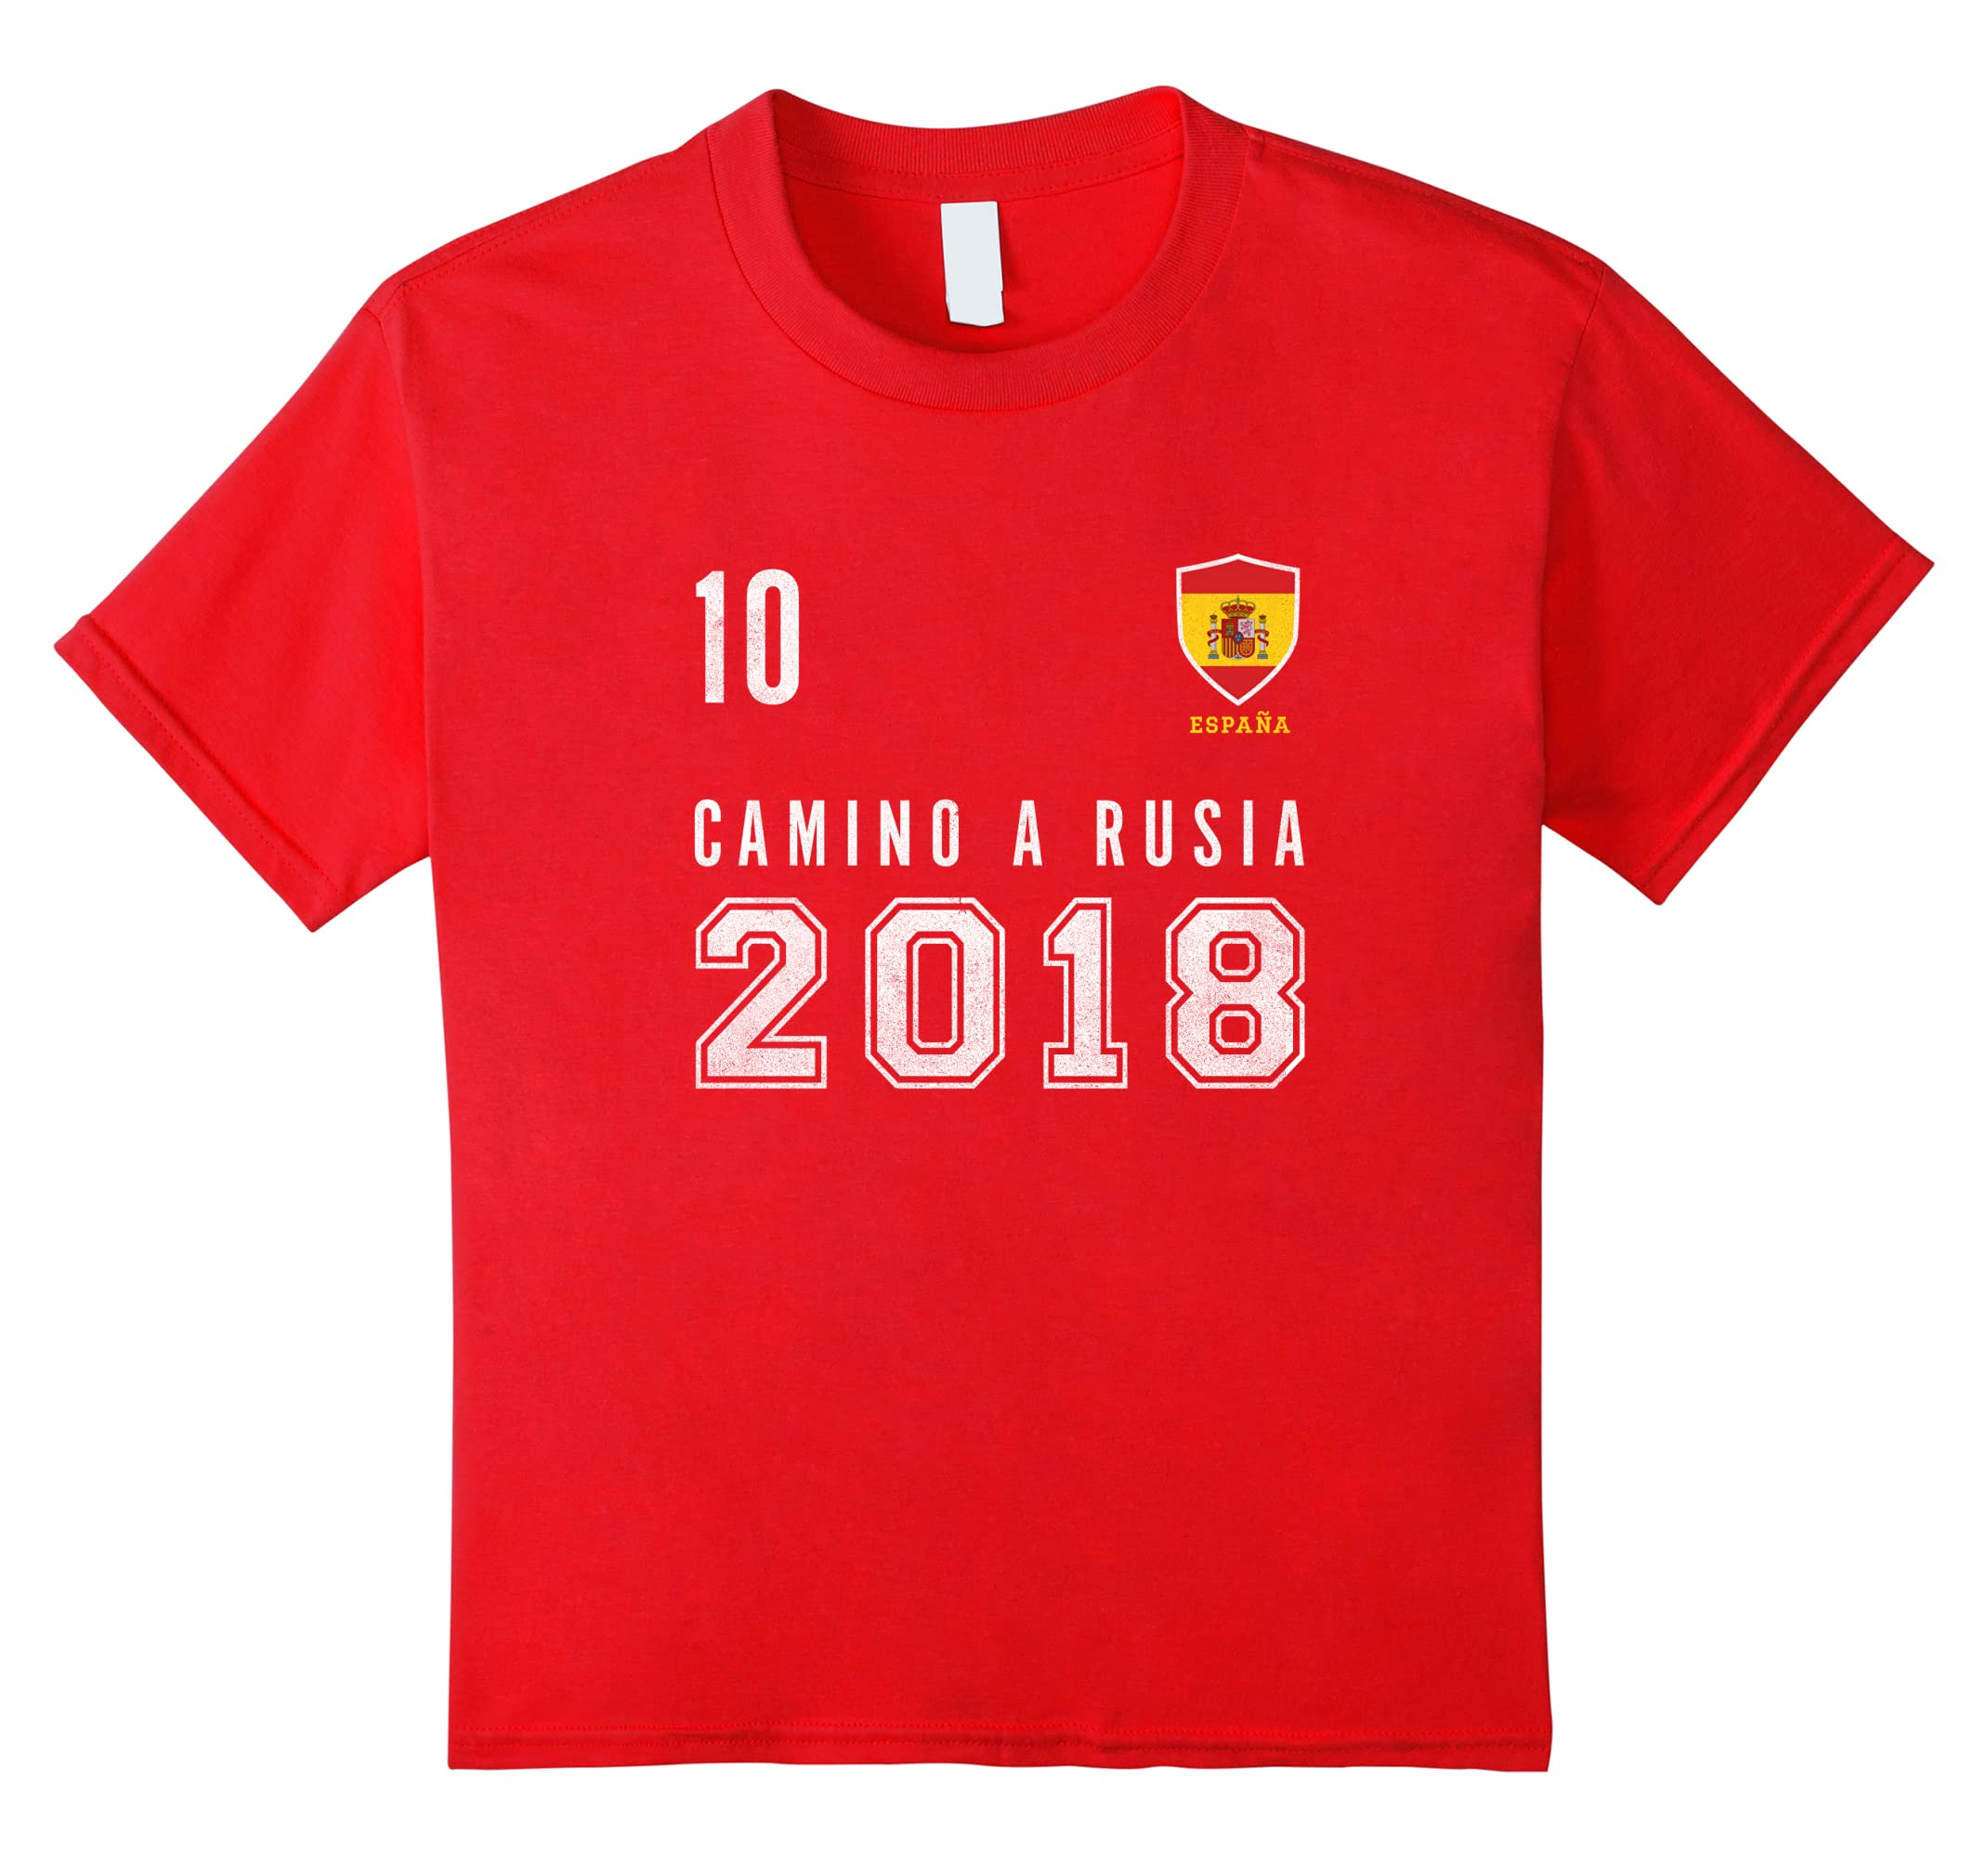 Amazon.com: Spain, Soccer, Rusia 2018 tshirt - Camiseta Futbol Tee: Clothing